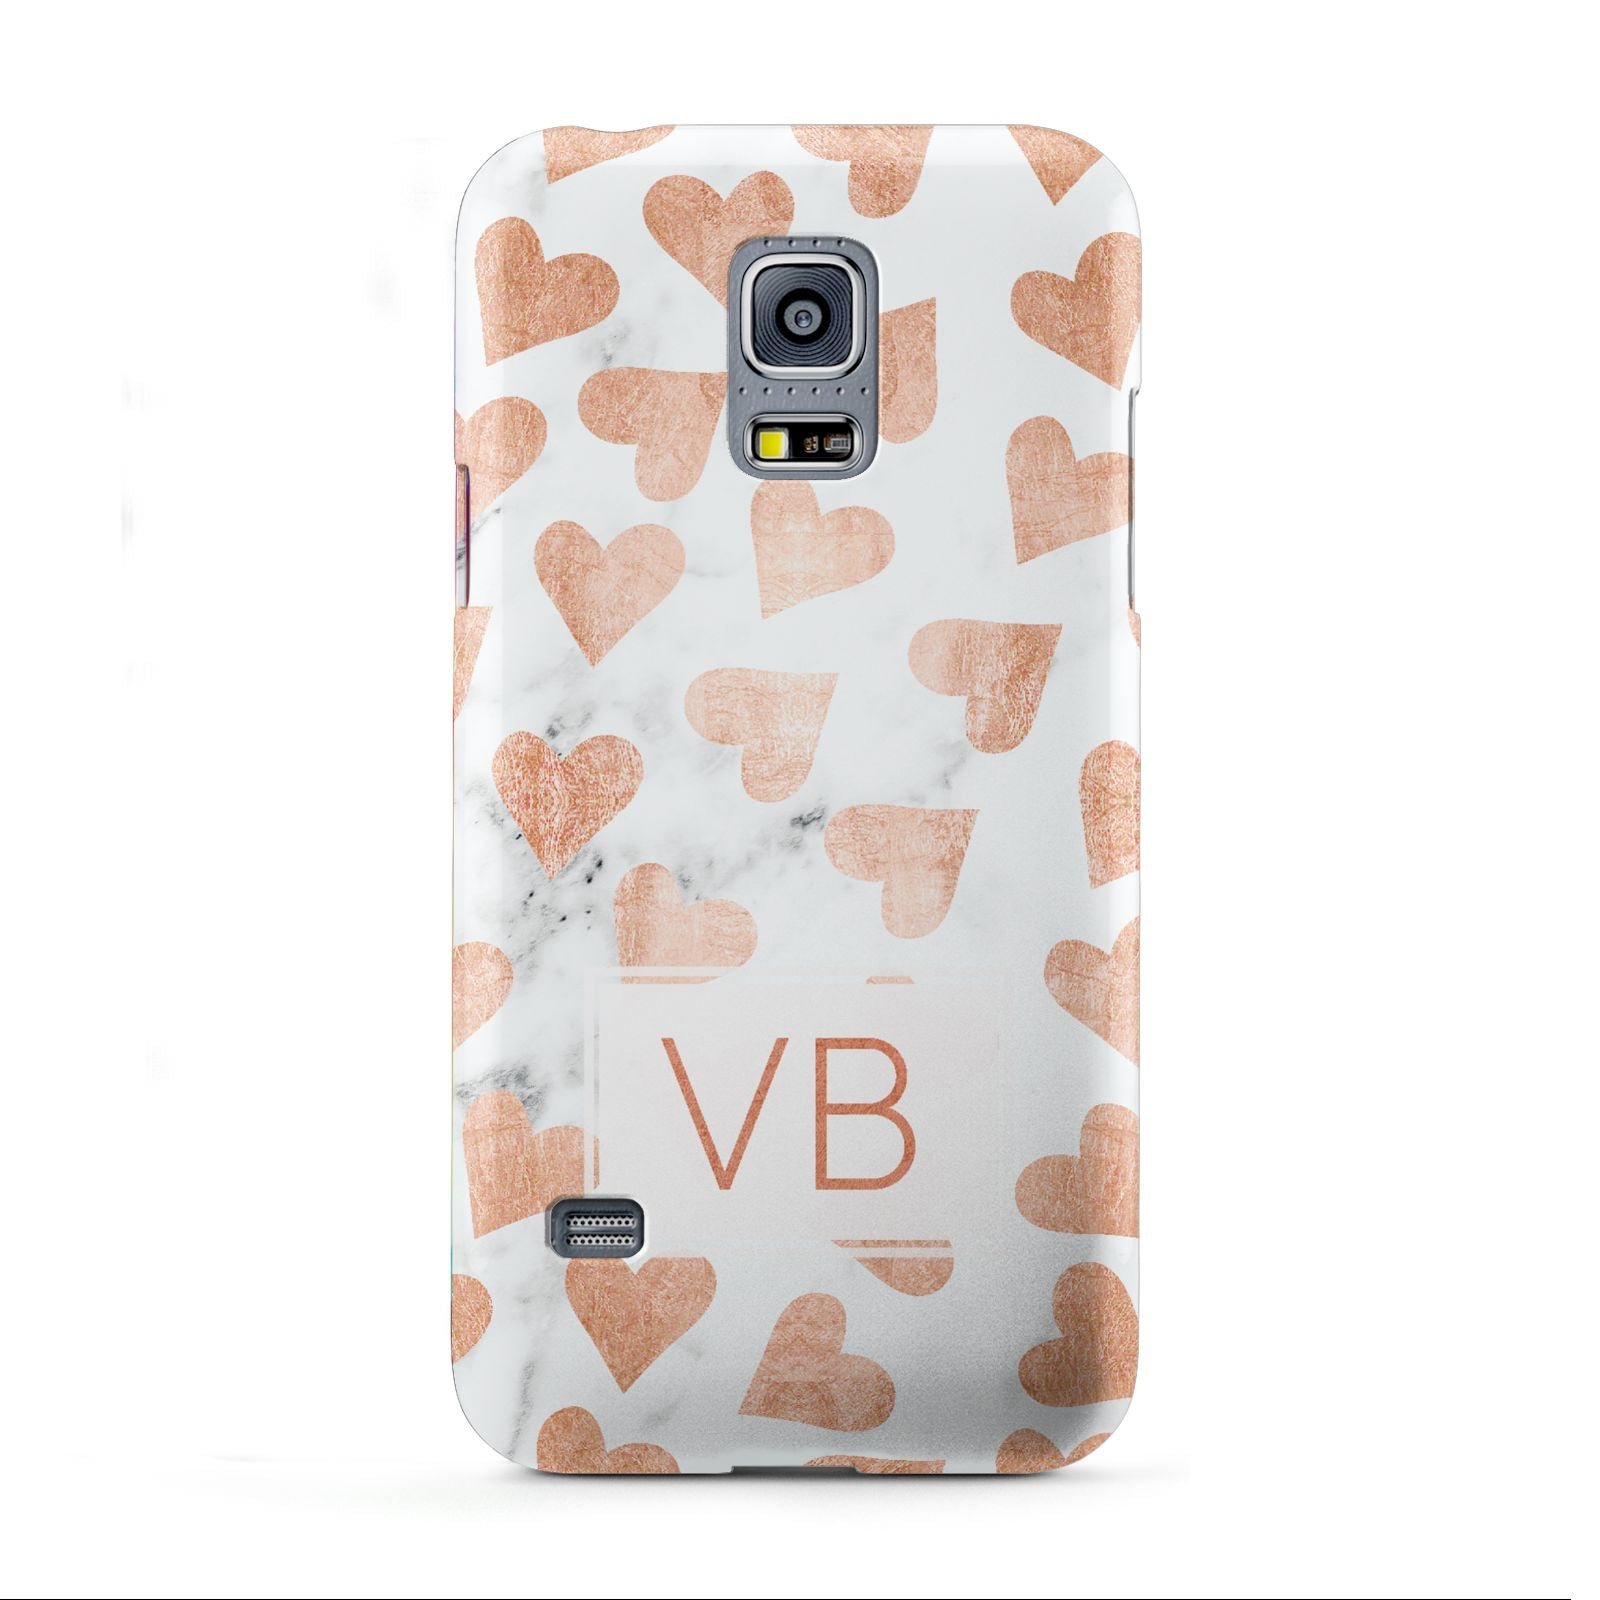 Personalised Heart Initialled Marble Samsung Galaxy S5 Mini Case